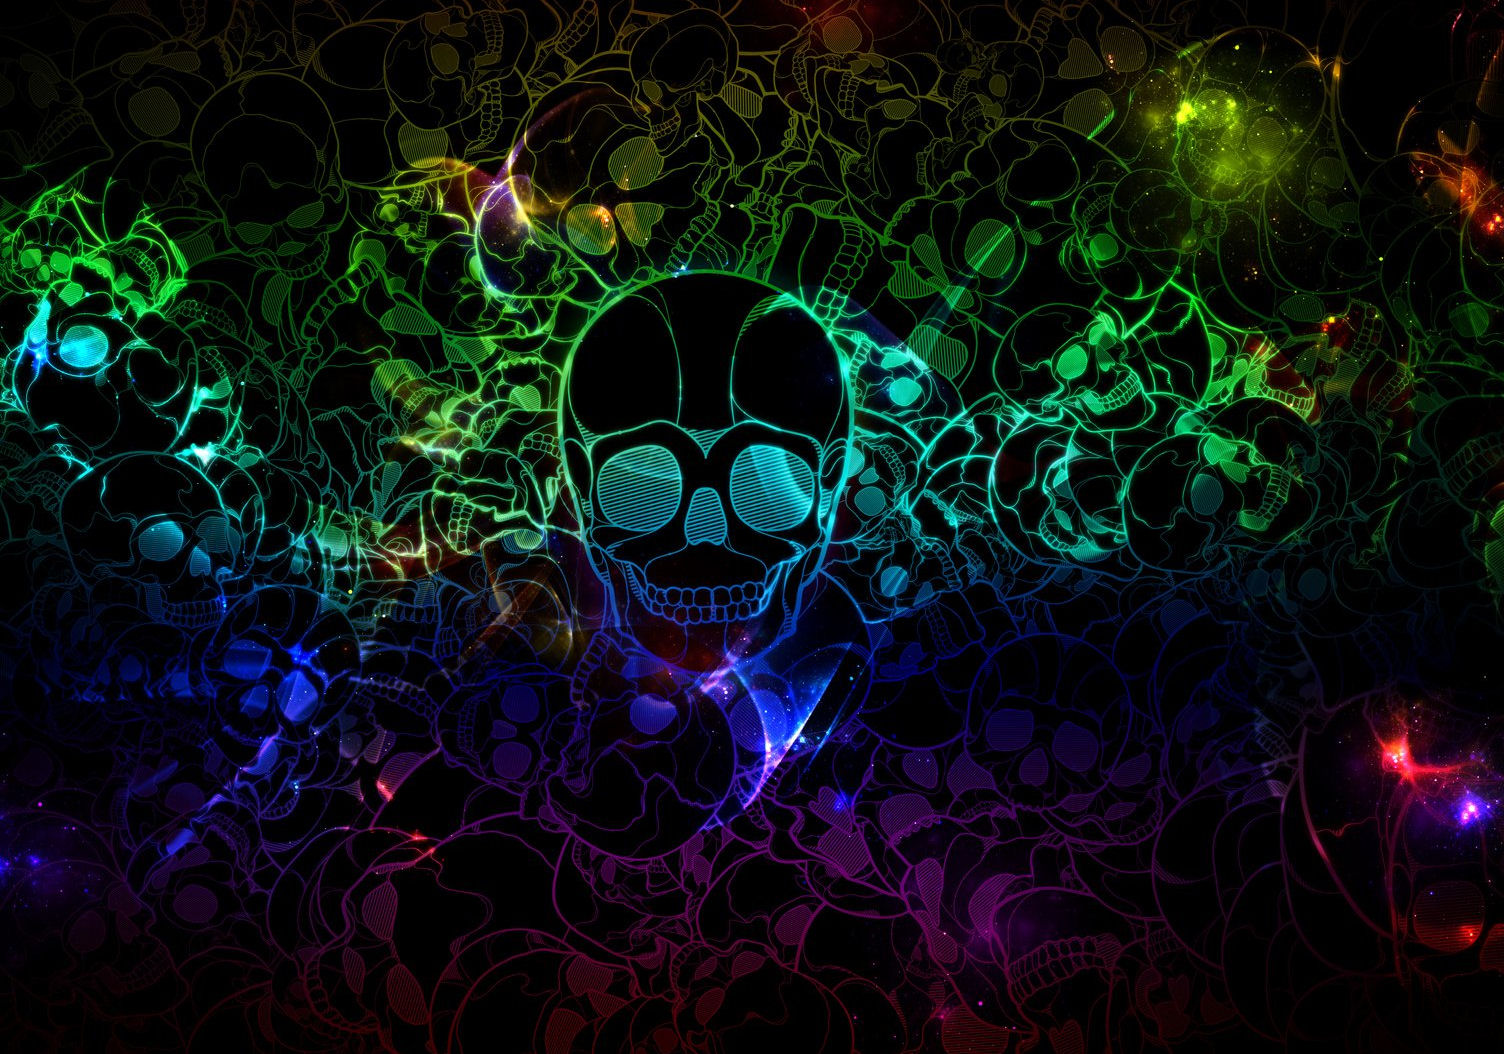 Neon Backgrounds for Myspace HD wallpaper background 1504x1054